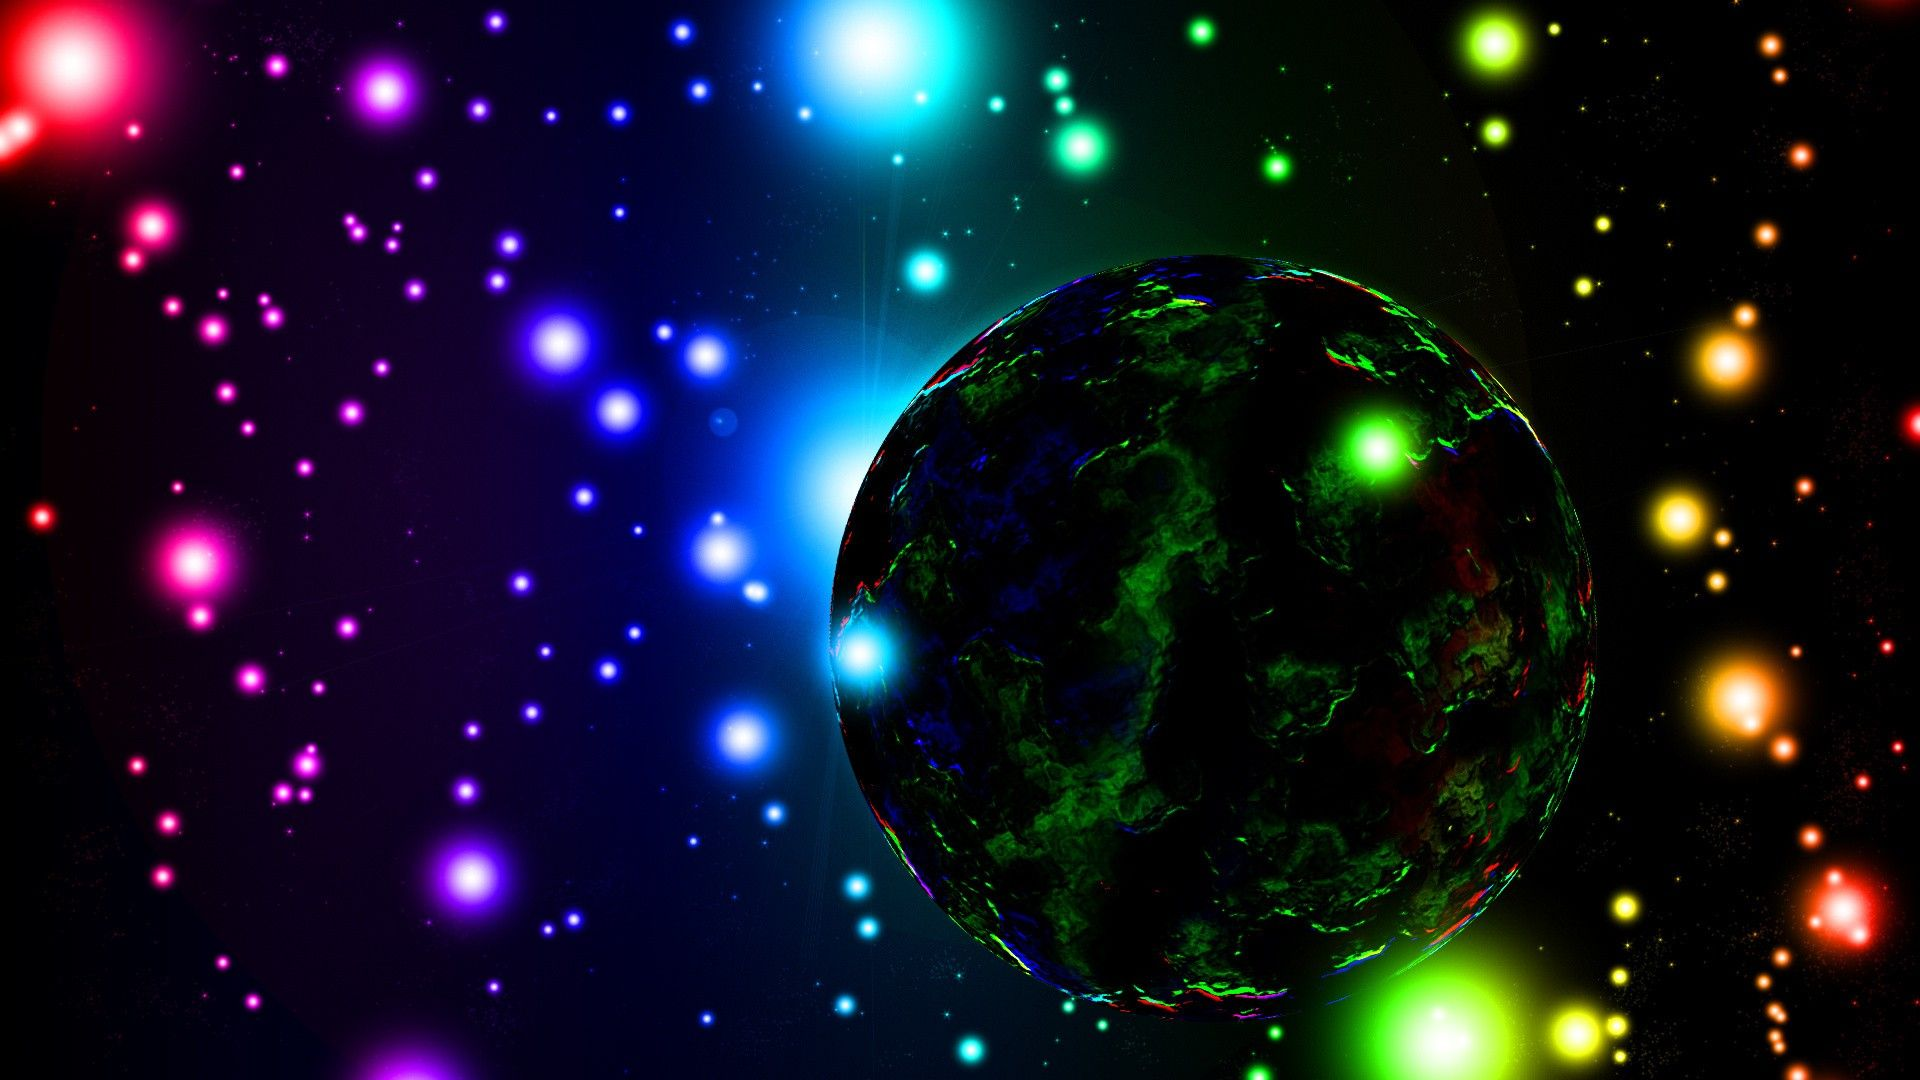 Most Downloaded Psychedelic Wallpapers Full Hd Wallpaper Search Sci Fi Wallpaper Psychedelic Art Colorful Space